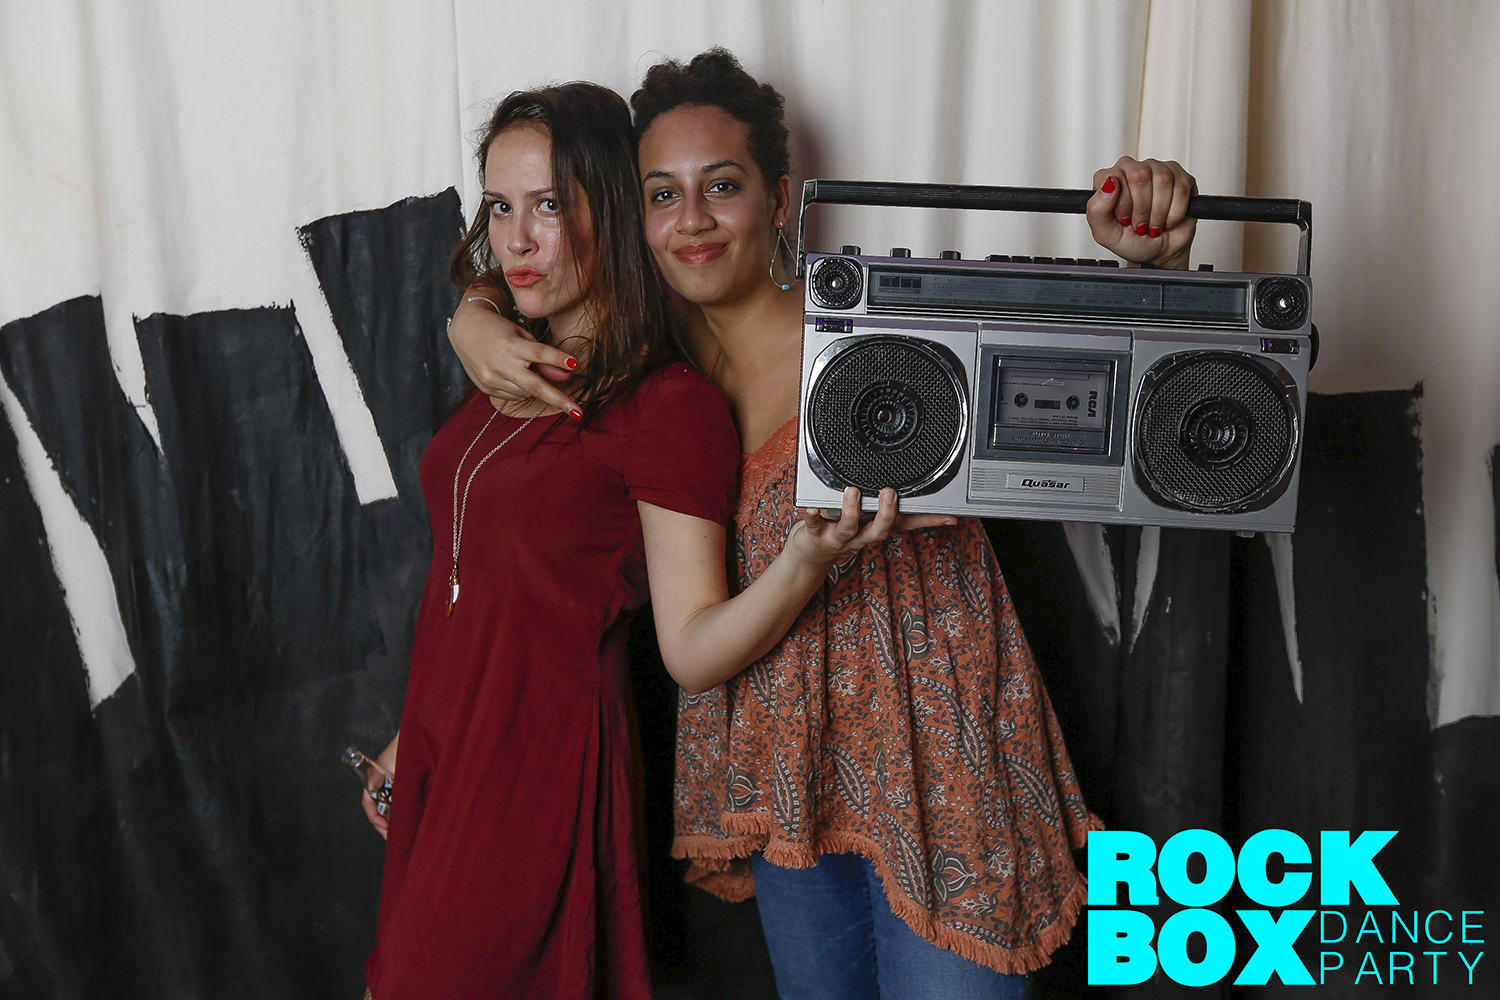 Rock box feb 2015-0170.jpg